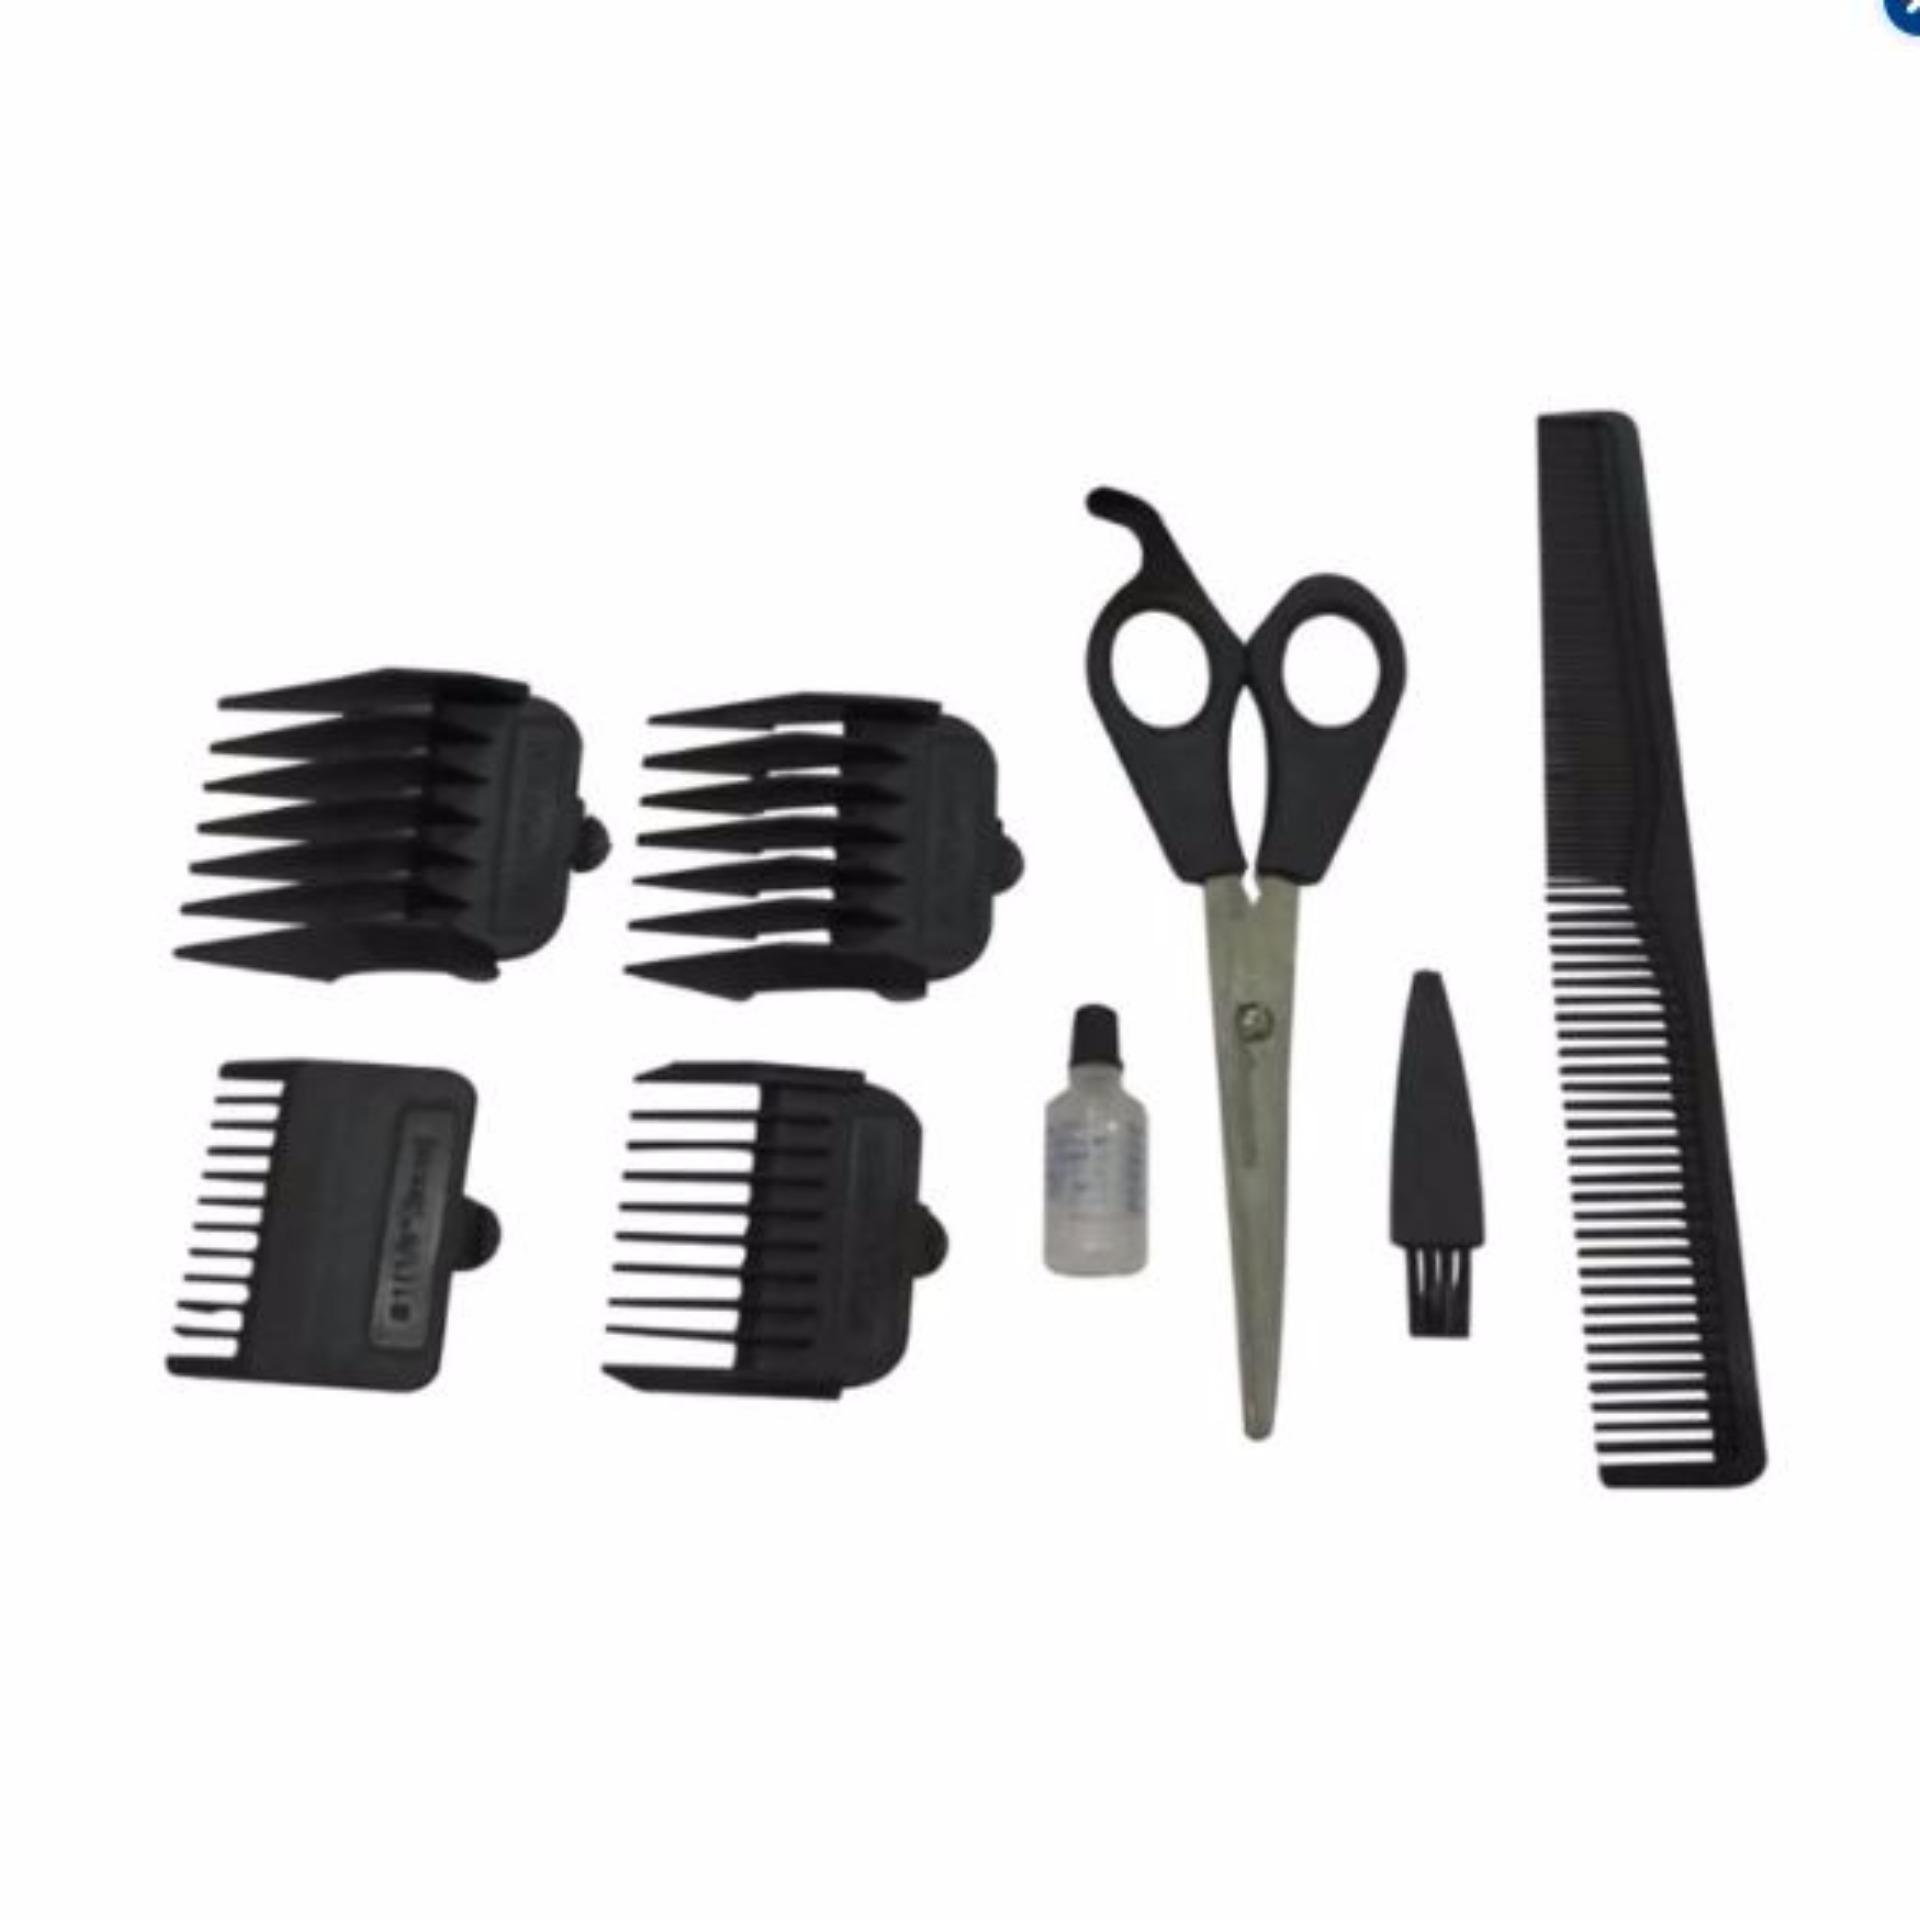 Product details of Scarlett SC-167 Hair Clipper 9-piece Set a3e9b12f665